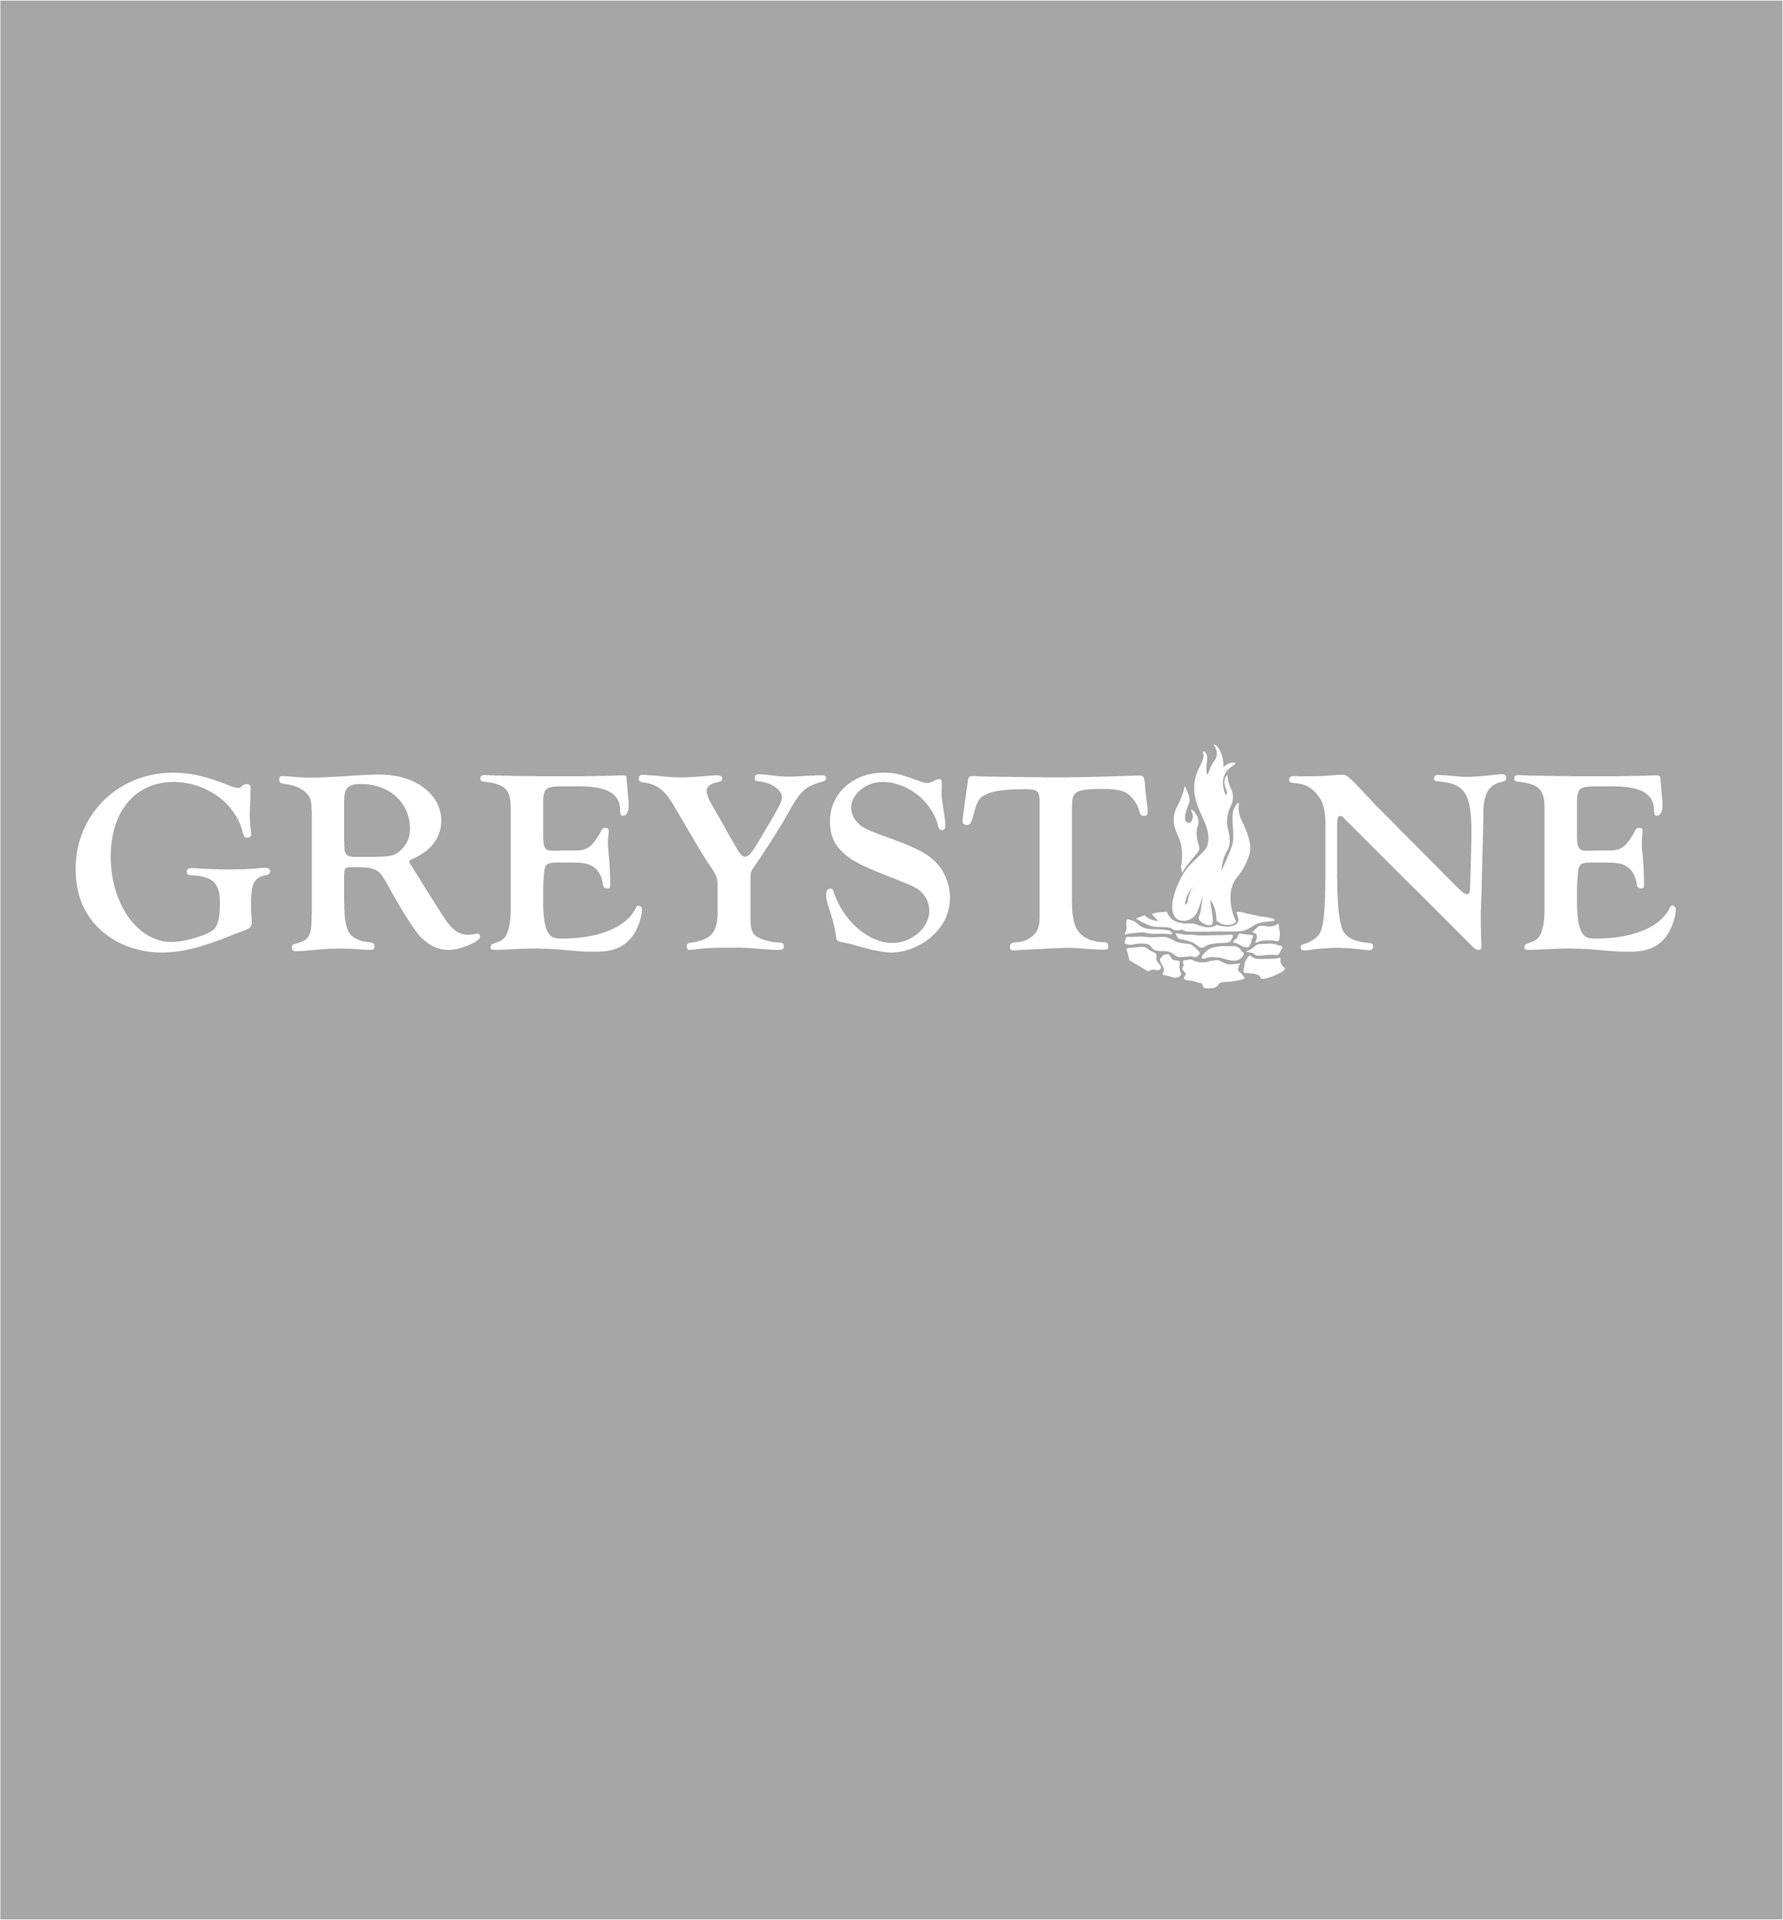 Picture of Greystone with Fire Vinyl Decal